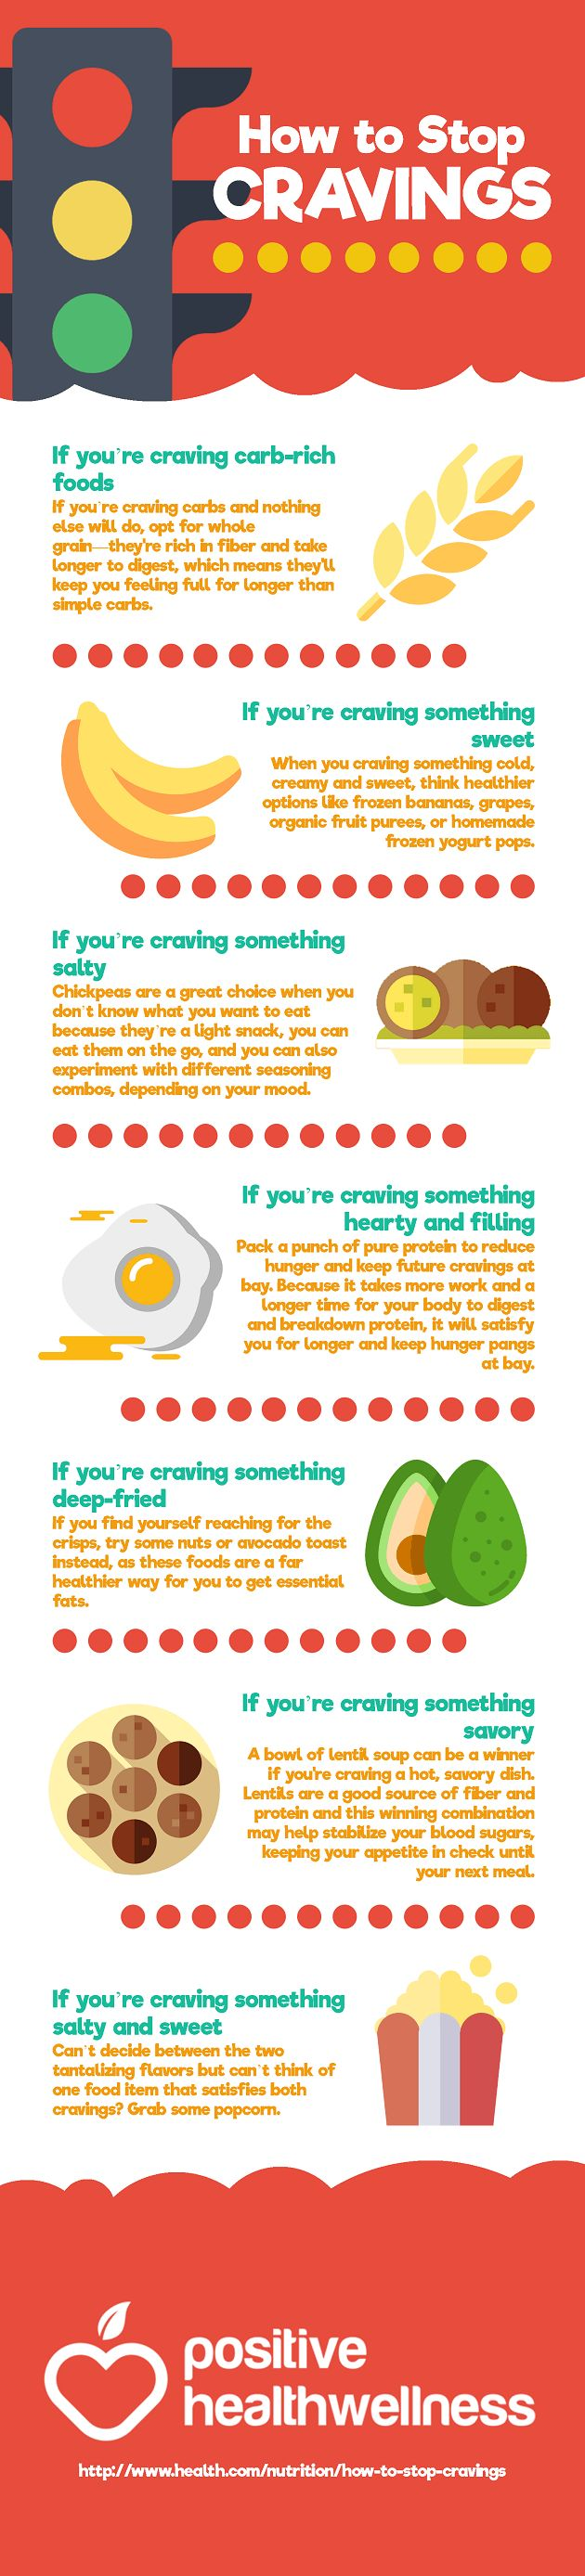 How To Stop Cravings – Positive Health Wellness Infographic